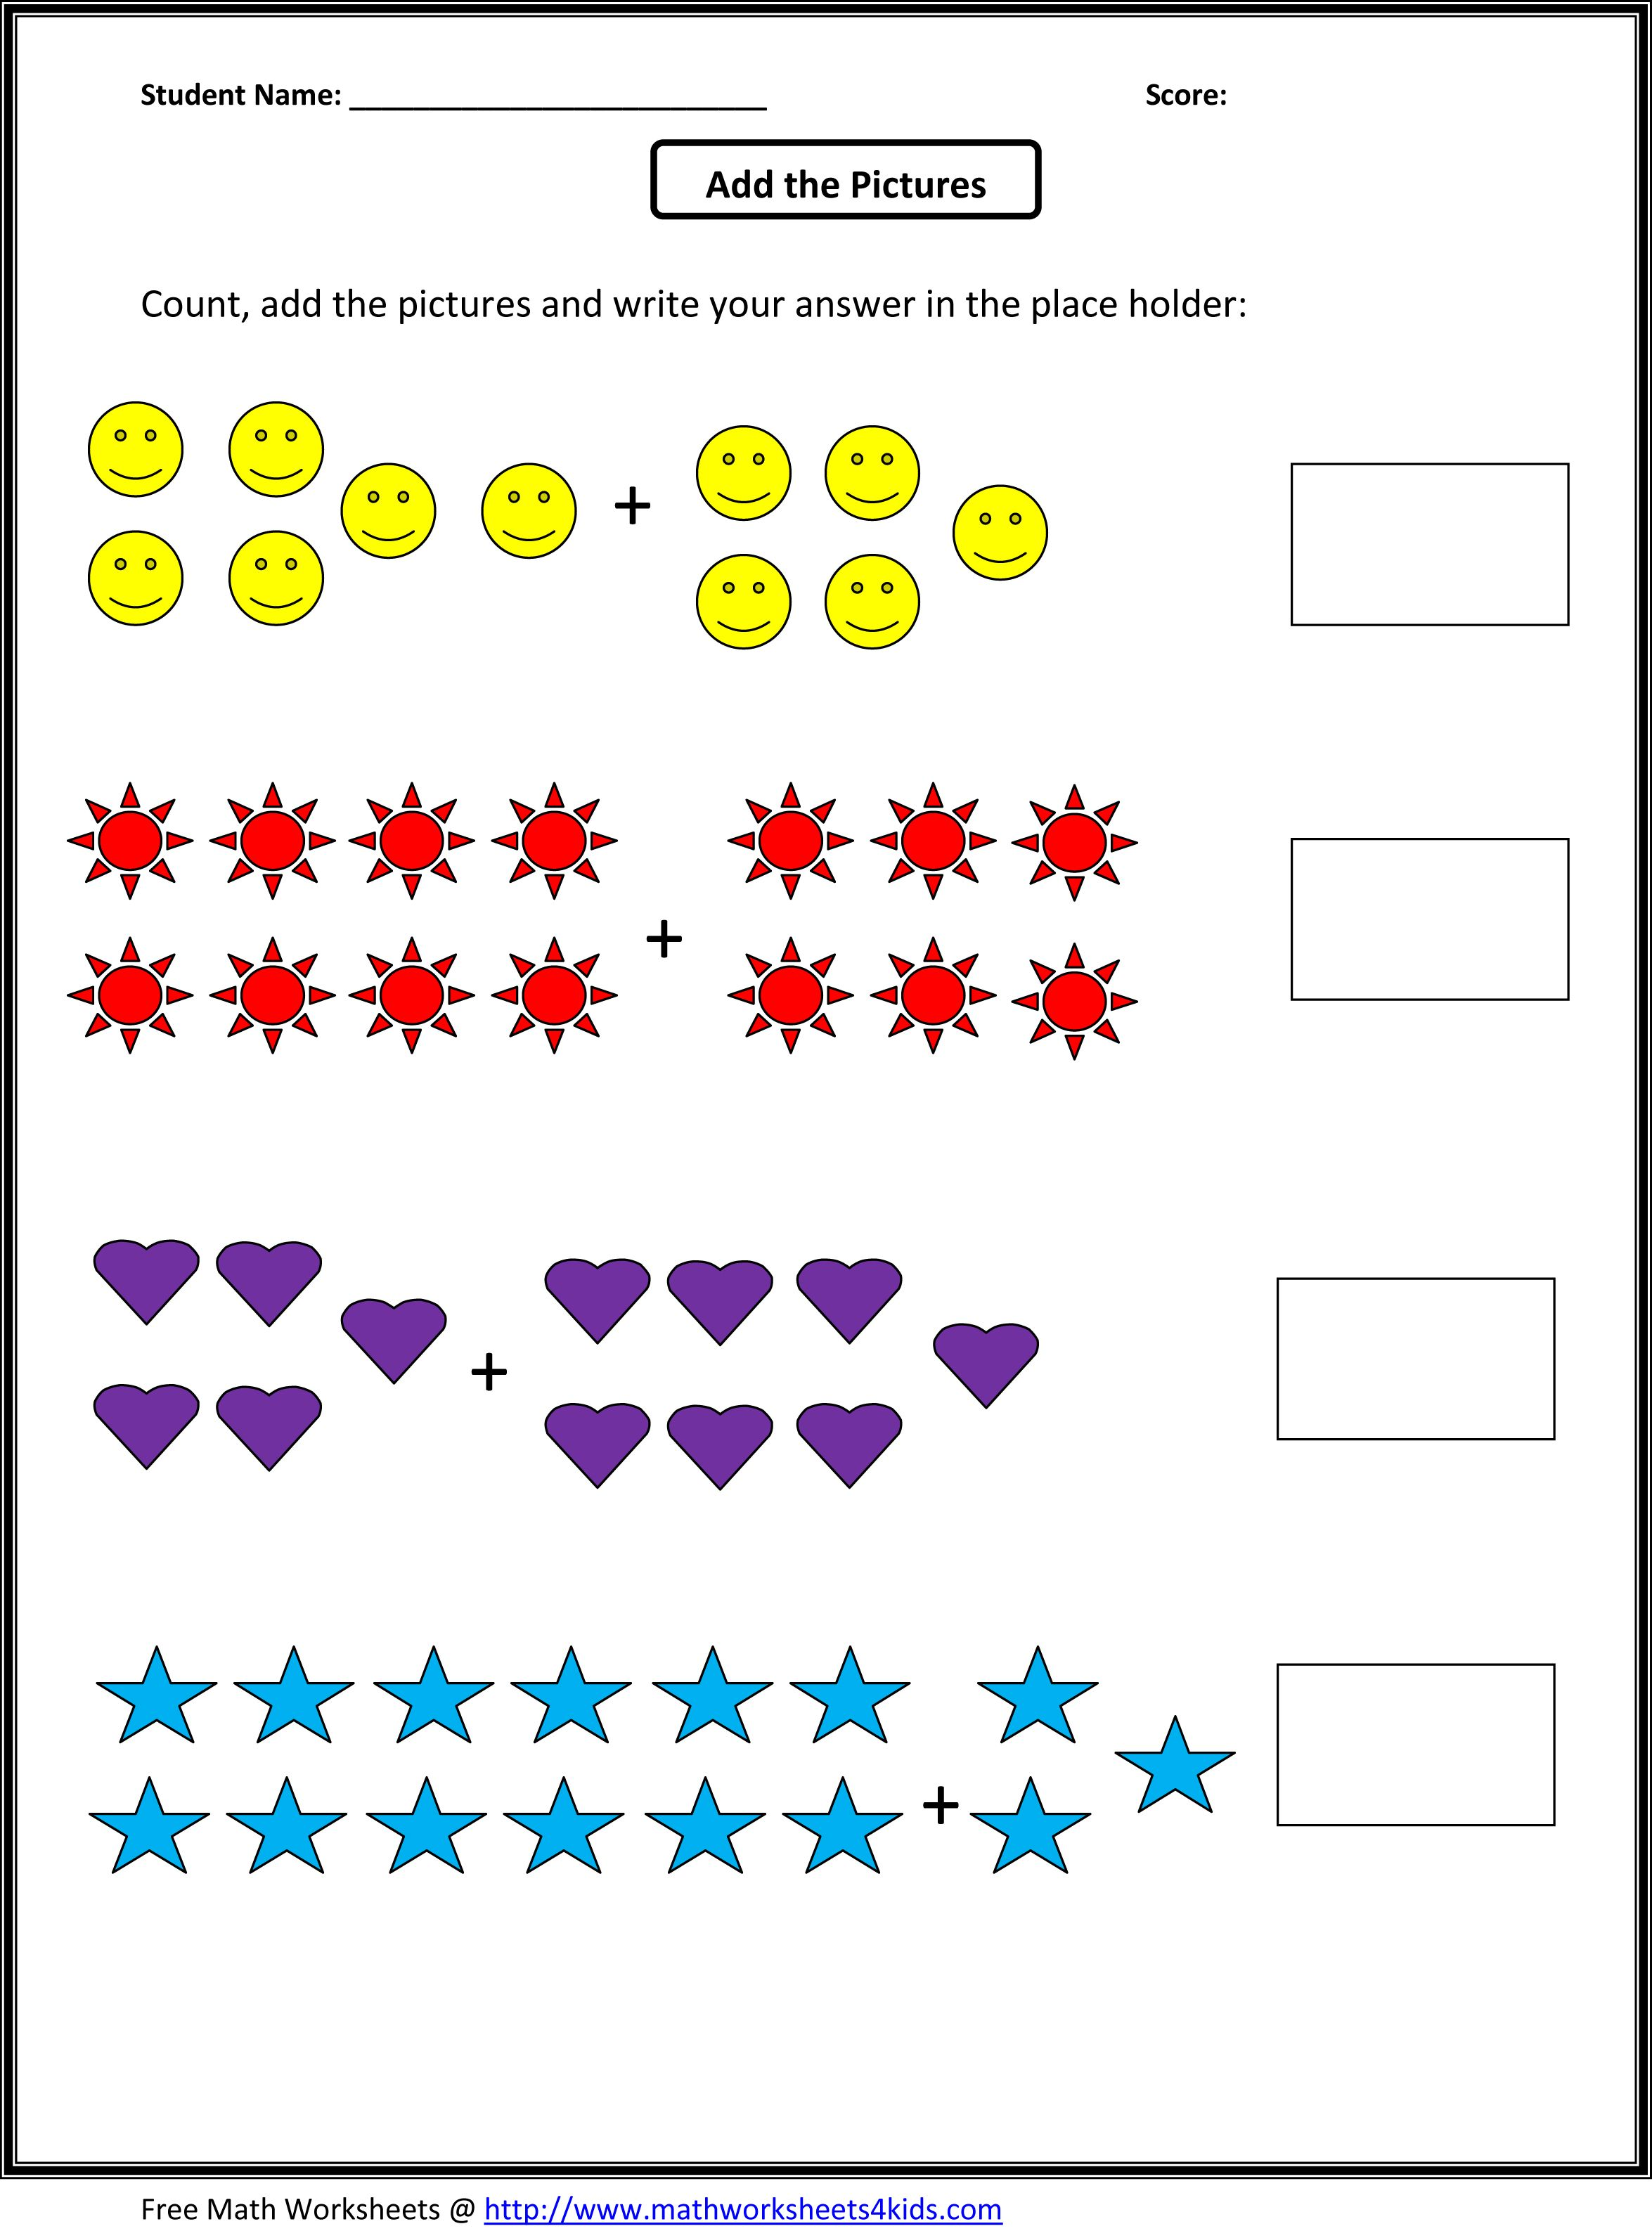 hight resolution of Count and add the pictures   First grade math worksheets